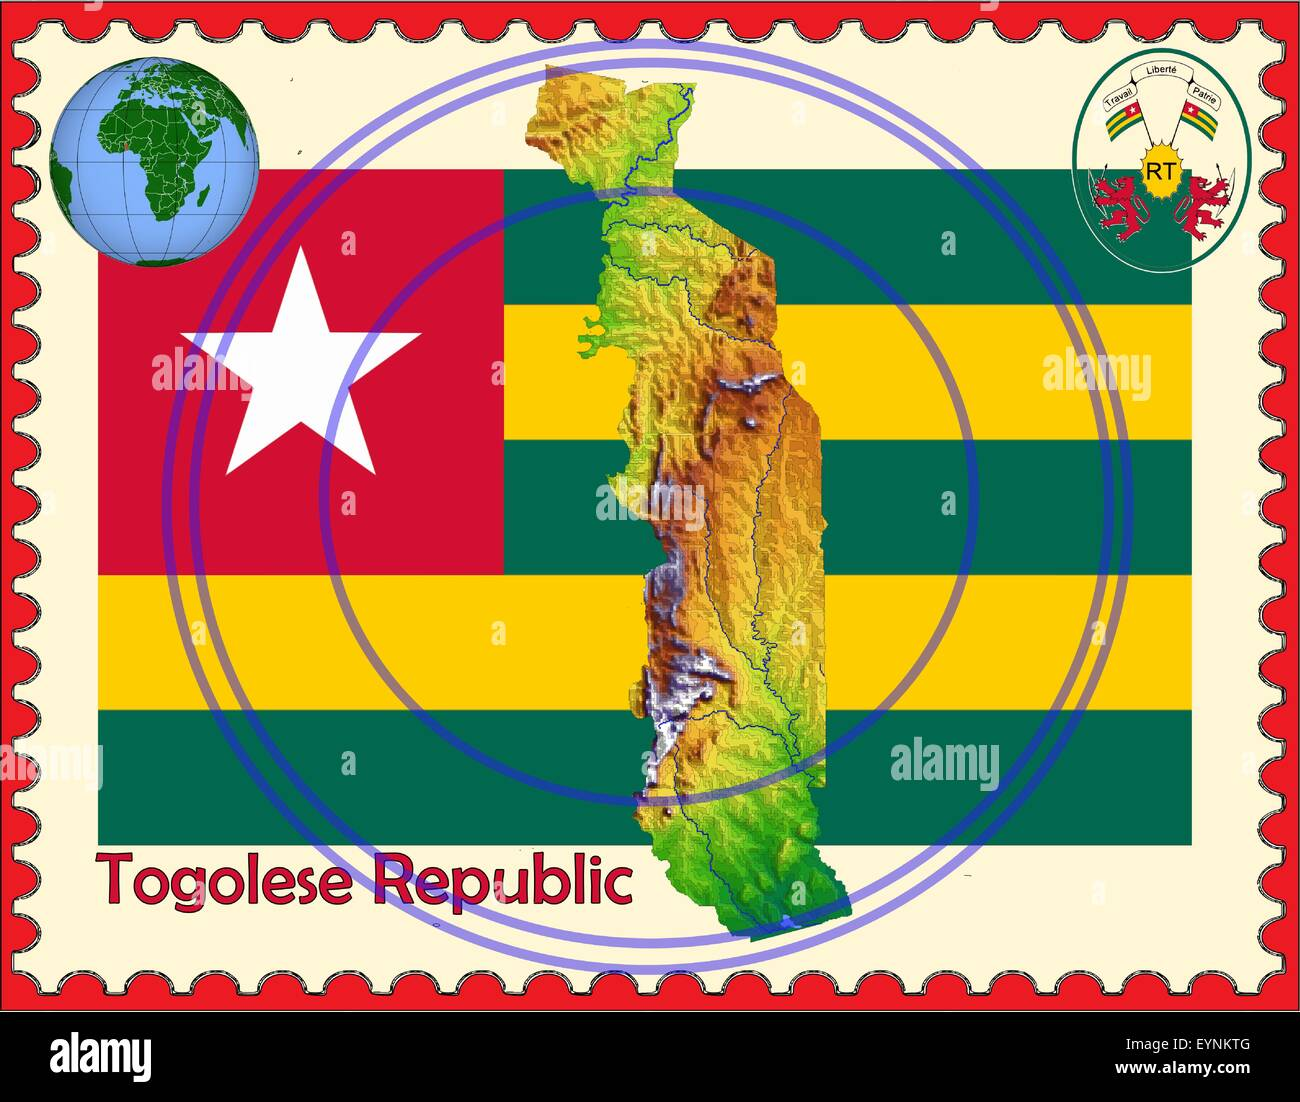 Togo map flag coat stamp - Stock Vector